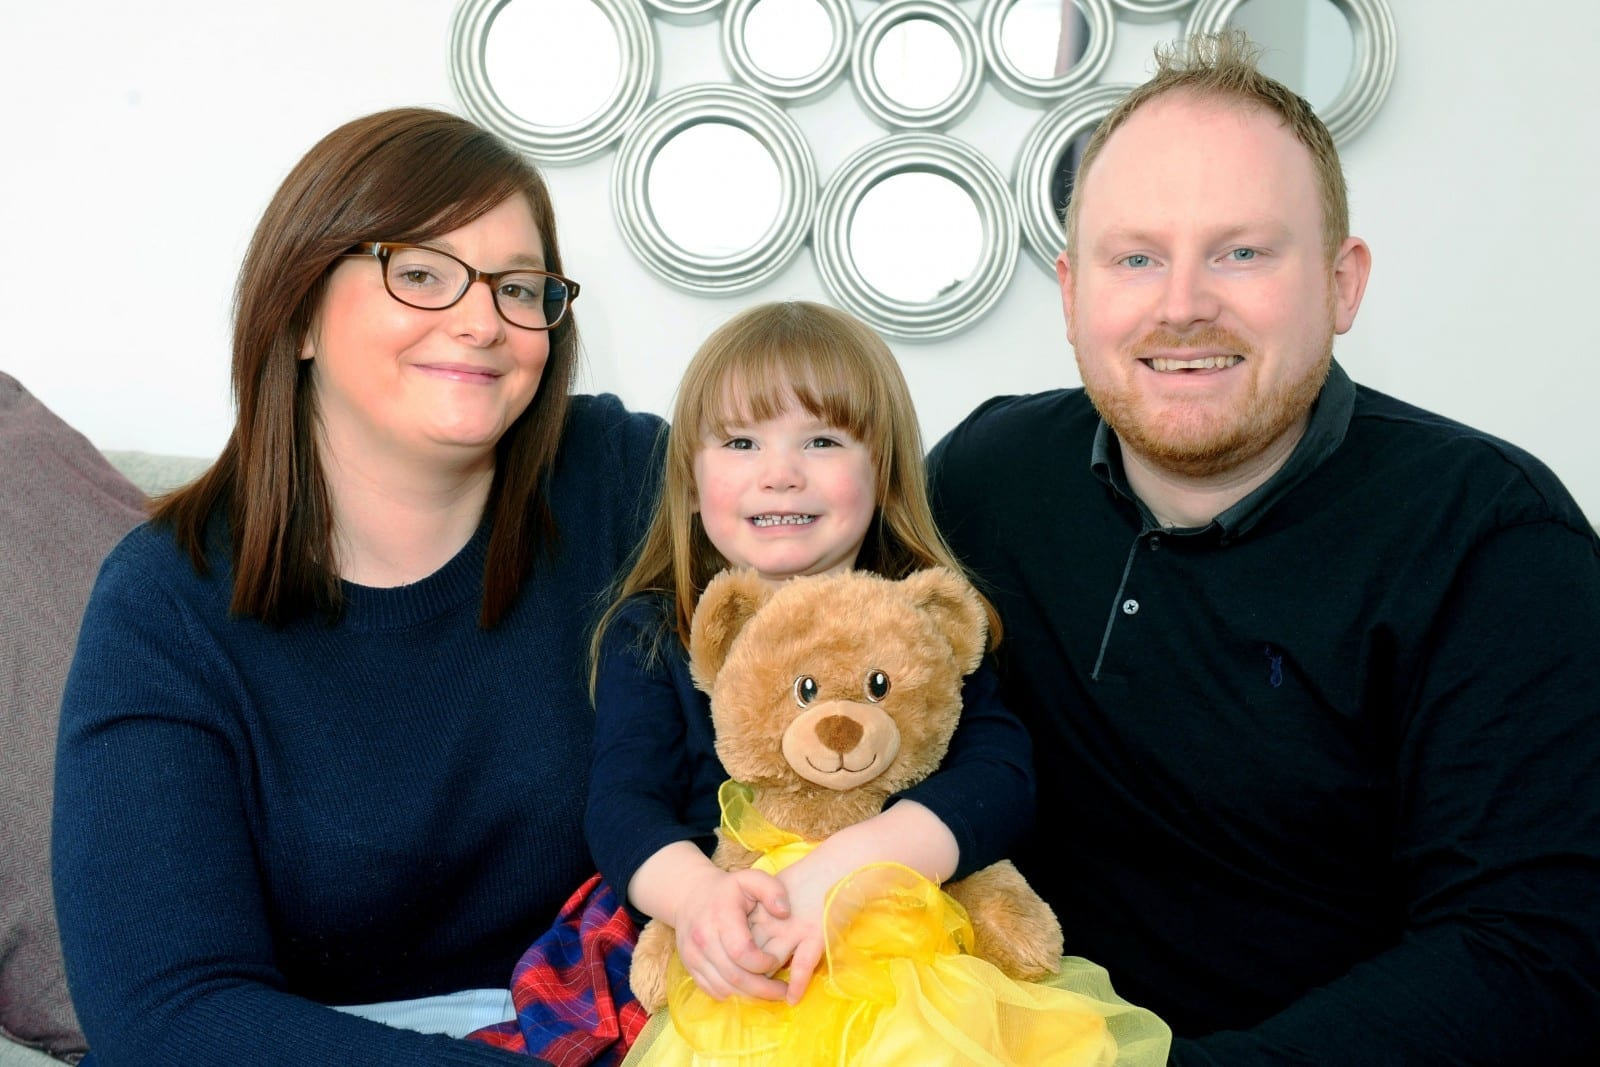 Determined Couple Who Went Through Five Rounds Of IVF Told Of Emotional Rollercoaster They Faced When Their Little Girl Was Born With Half A Heart